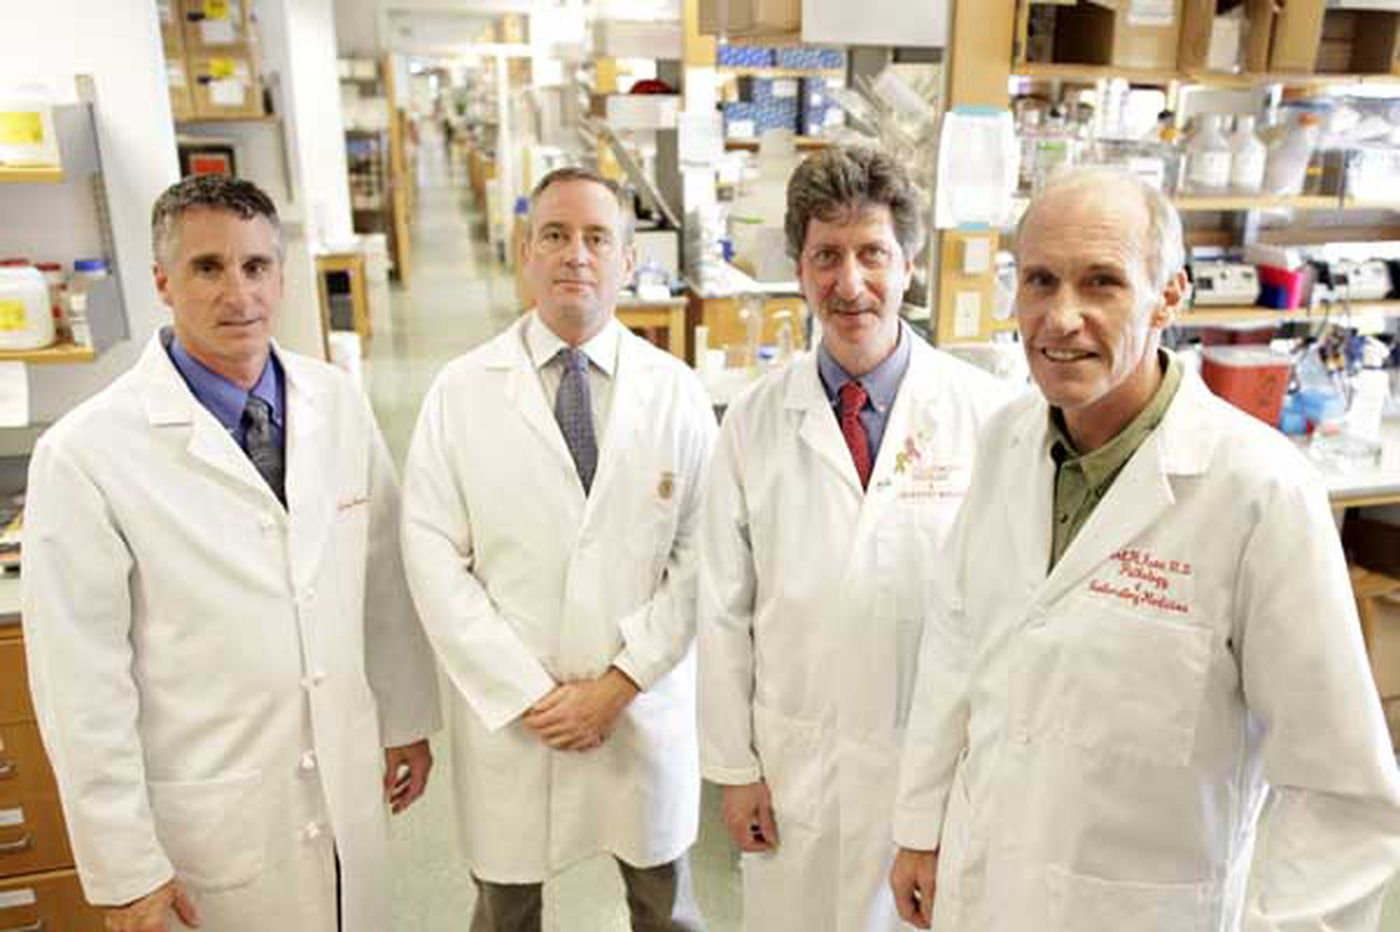 Biotech firm joins suit against Penn's cancer therapy